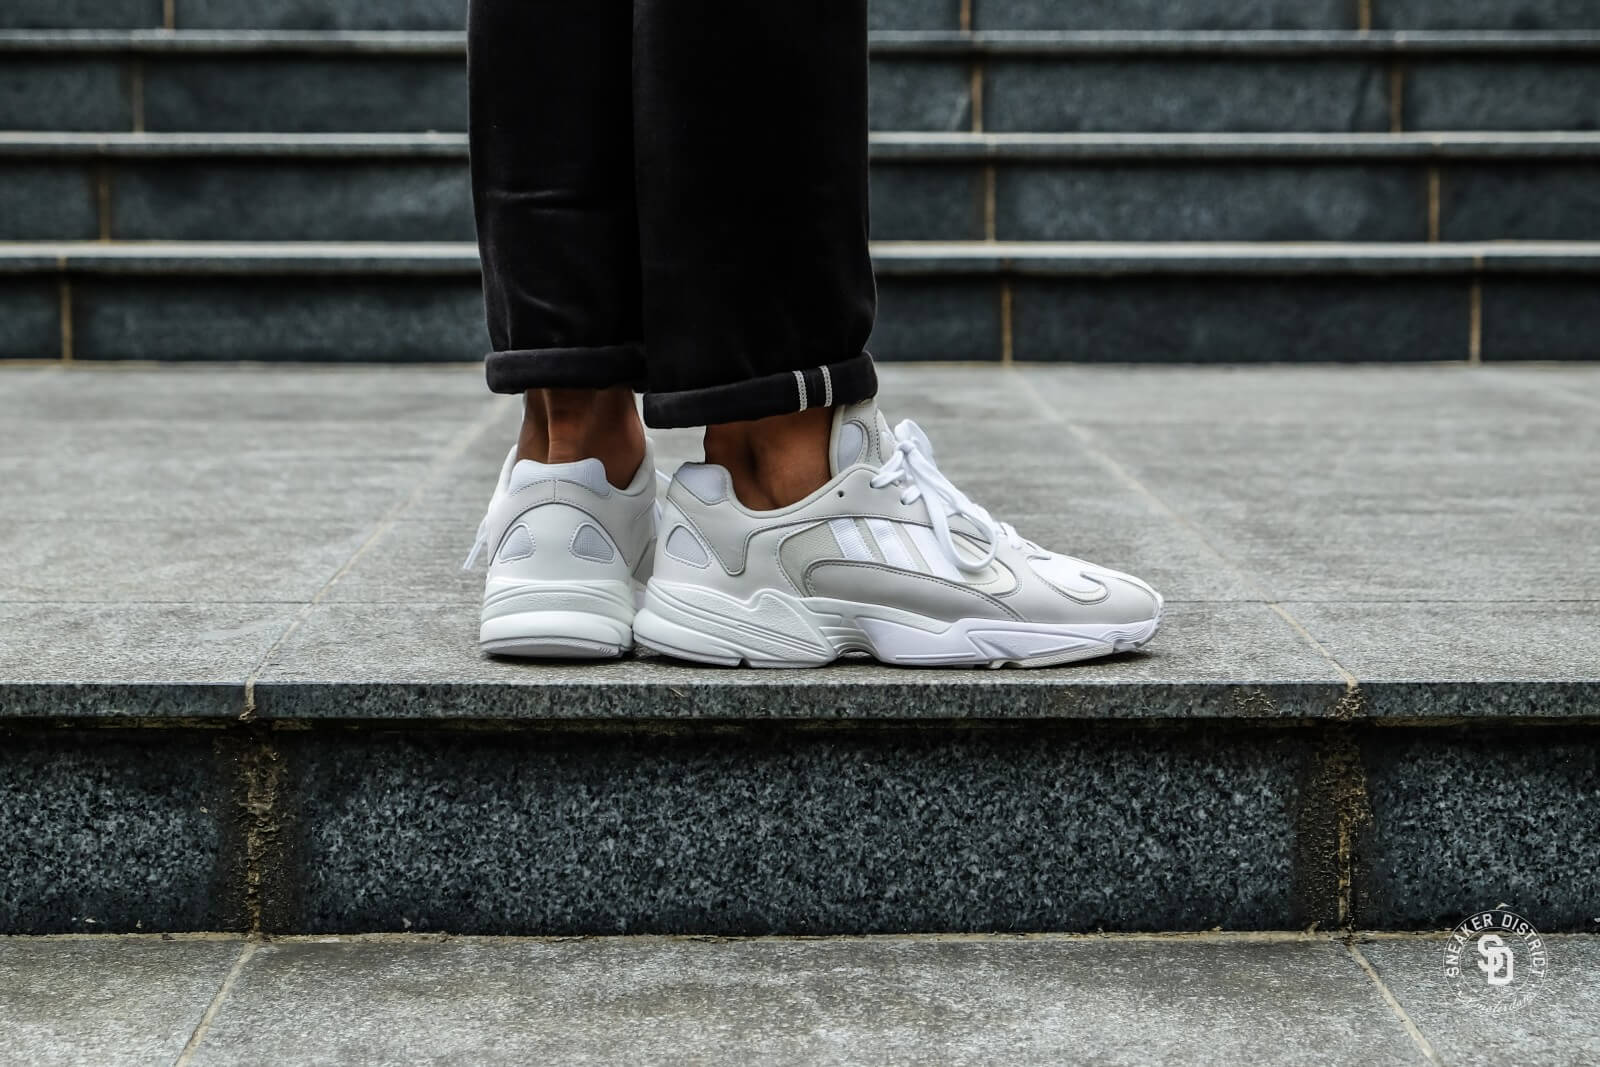 Adidas Yung 1 Cloud White/Footwear White - B37616